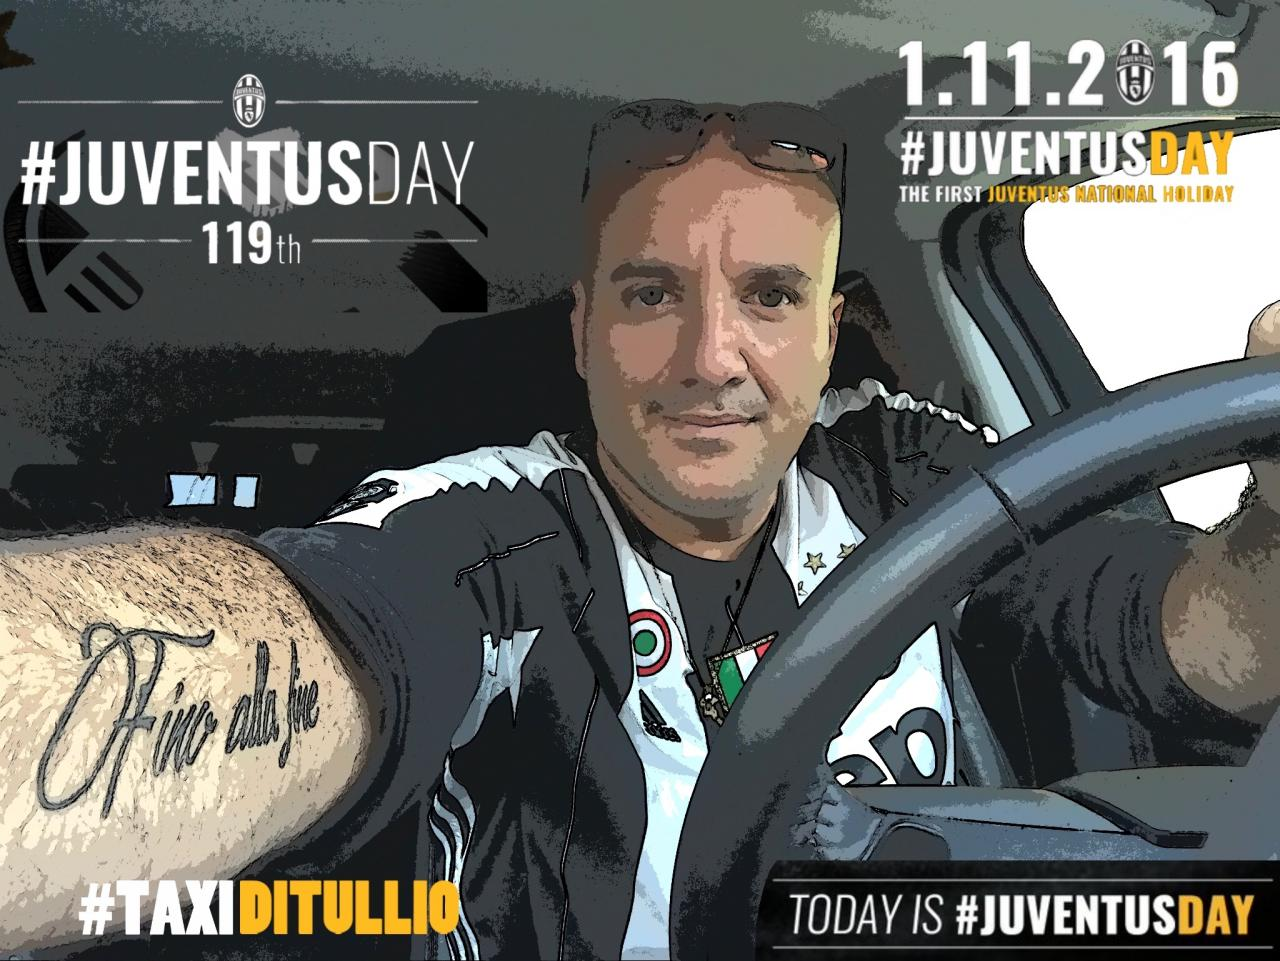 #TaxiDiTullio #JuventusDay